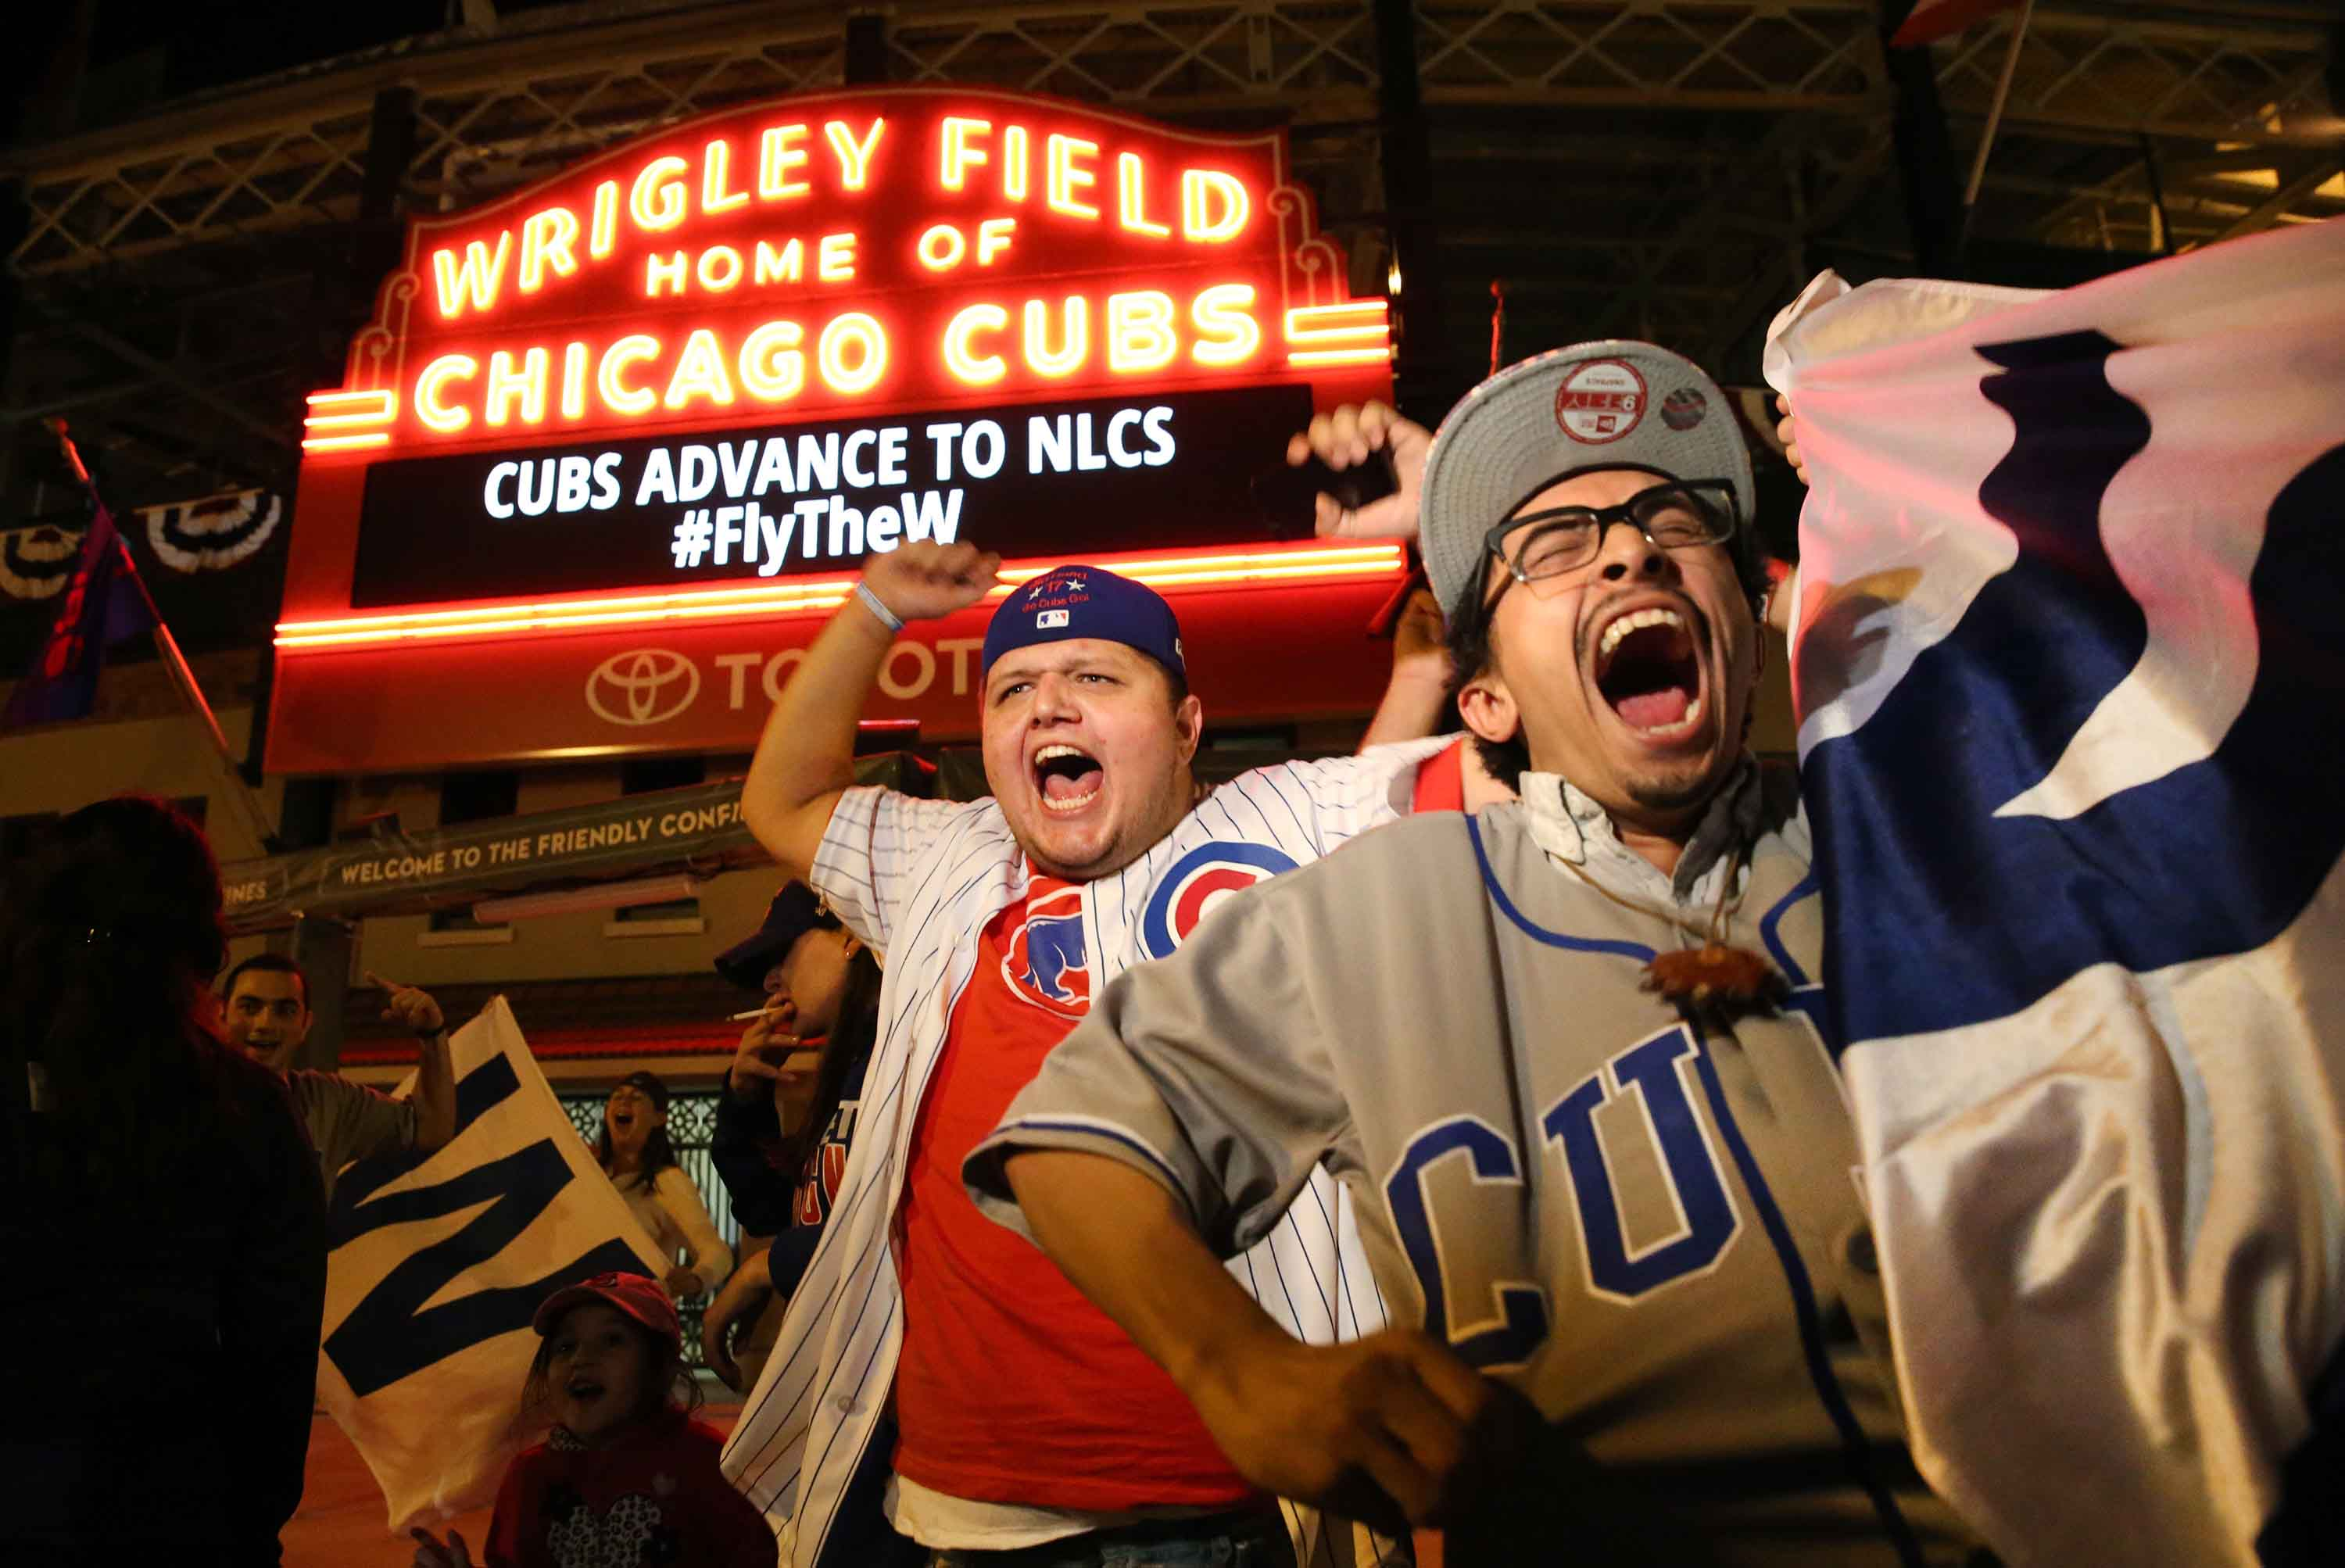 Chicago Cubs fans gather outside Wrigley Field to celebrate the Cubs clinching game 4 of the NLDS series over the San Francisco Giants. on Tuesday, Oct. 11, 2016 in Chicago. (Nuccio DiNuzzo/Chicago Tribune/TNS)